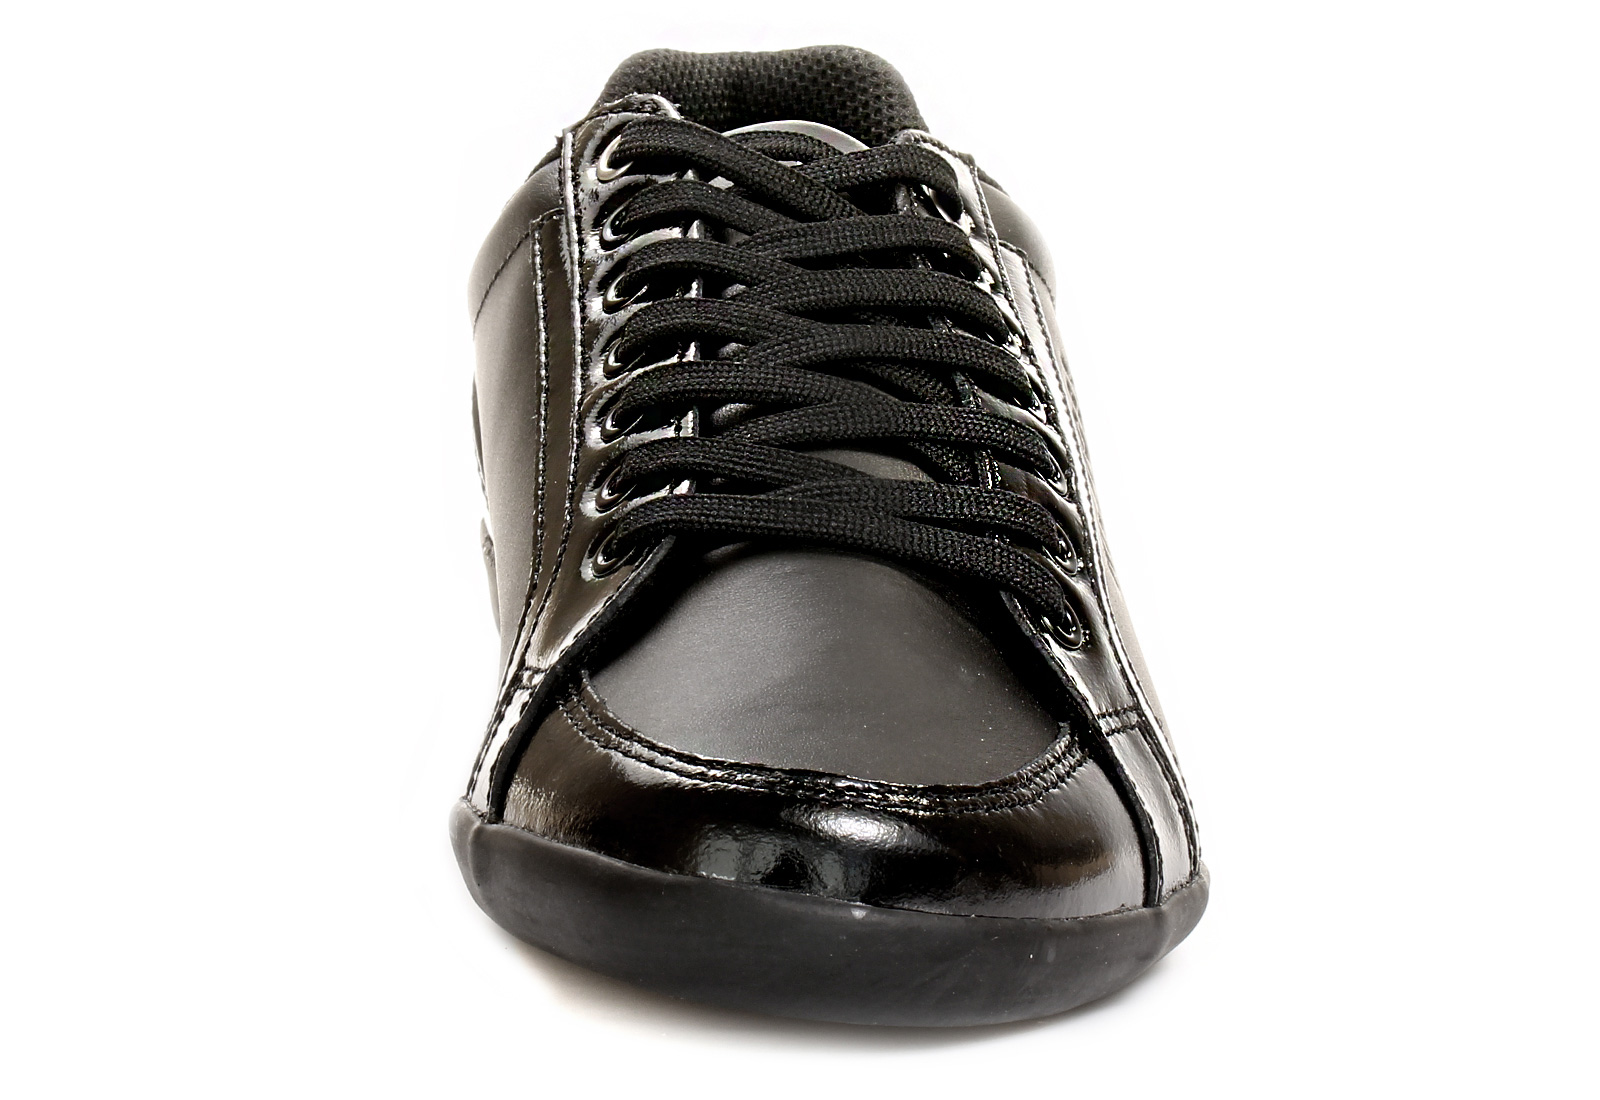 c670f926a5 Tommy Hilfiger Shoes - Ray 6 - 12F-4995-990 - Online shop for ...